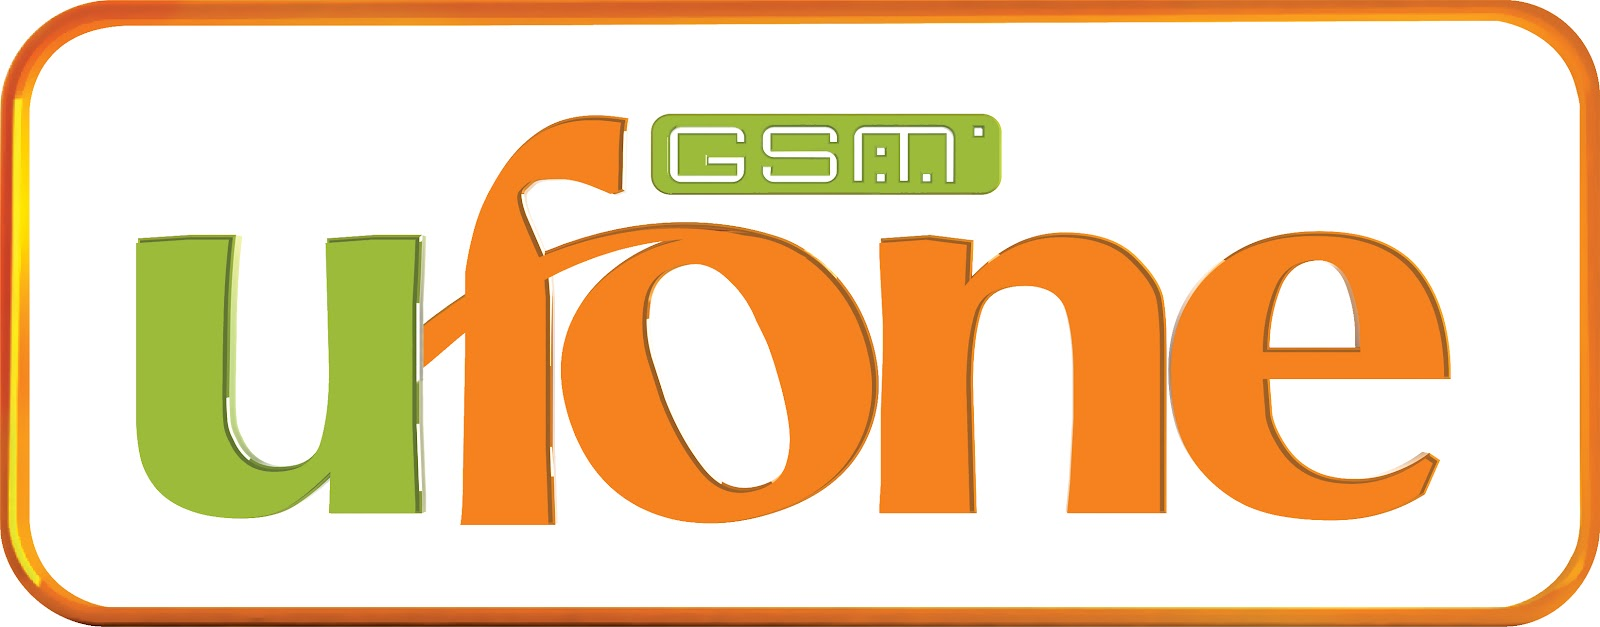 Comparitive study of ufone and moblink